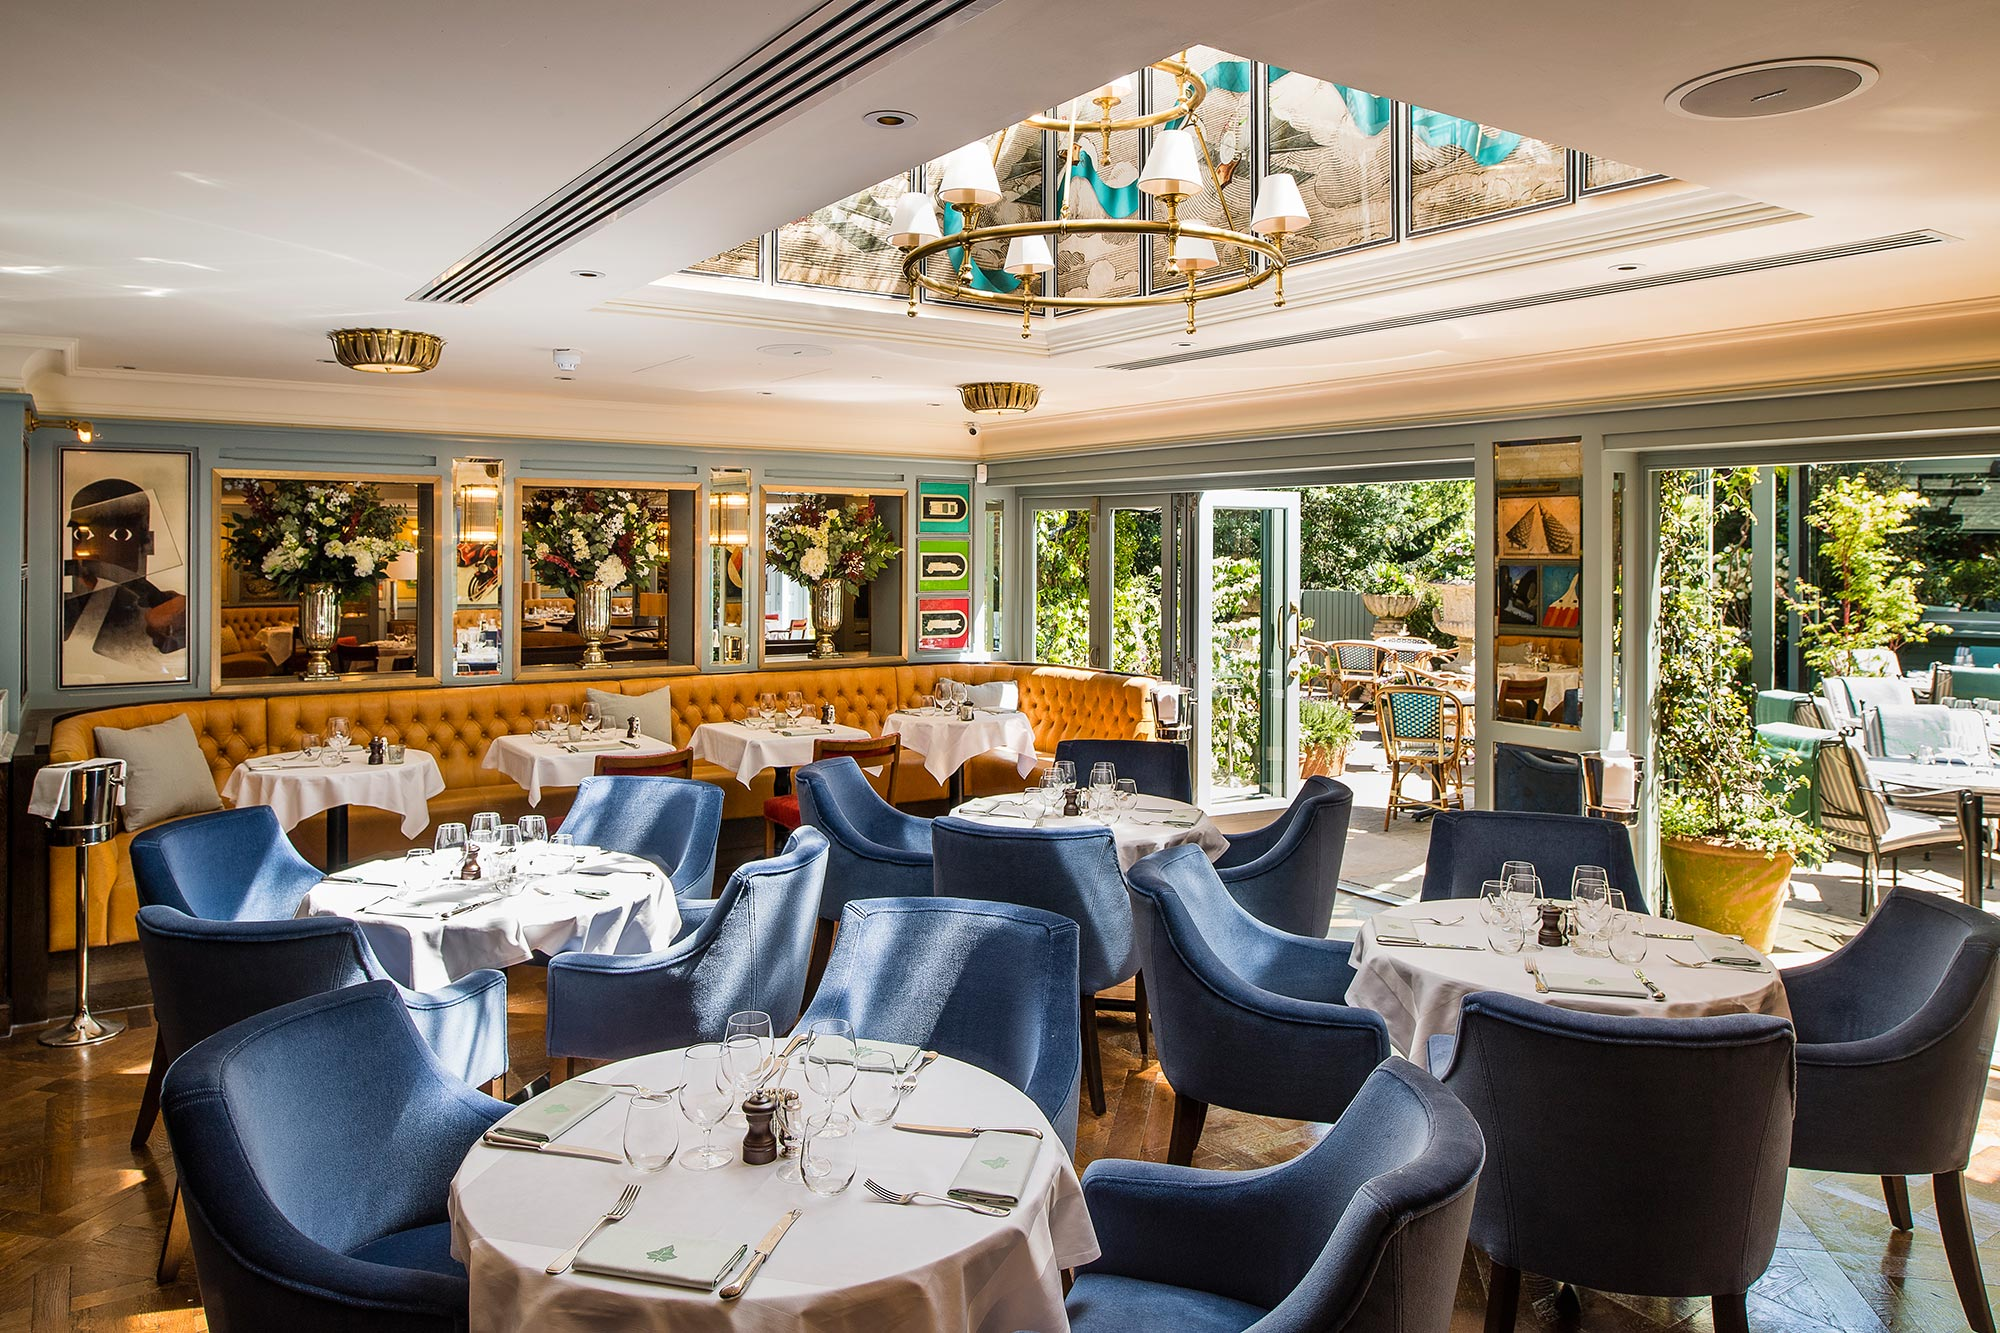 Restaurant Private hire in Cobham - The Ivy Cobham Brasserie - The Ivy Cobham Brasserie